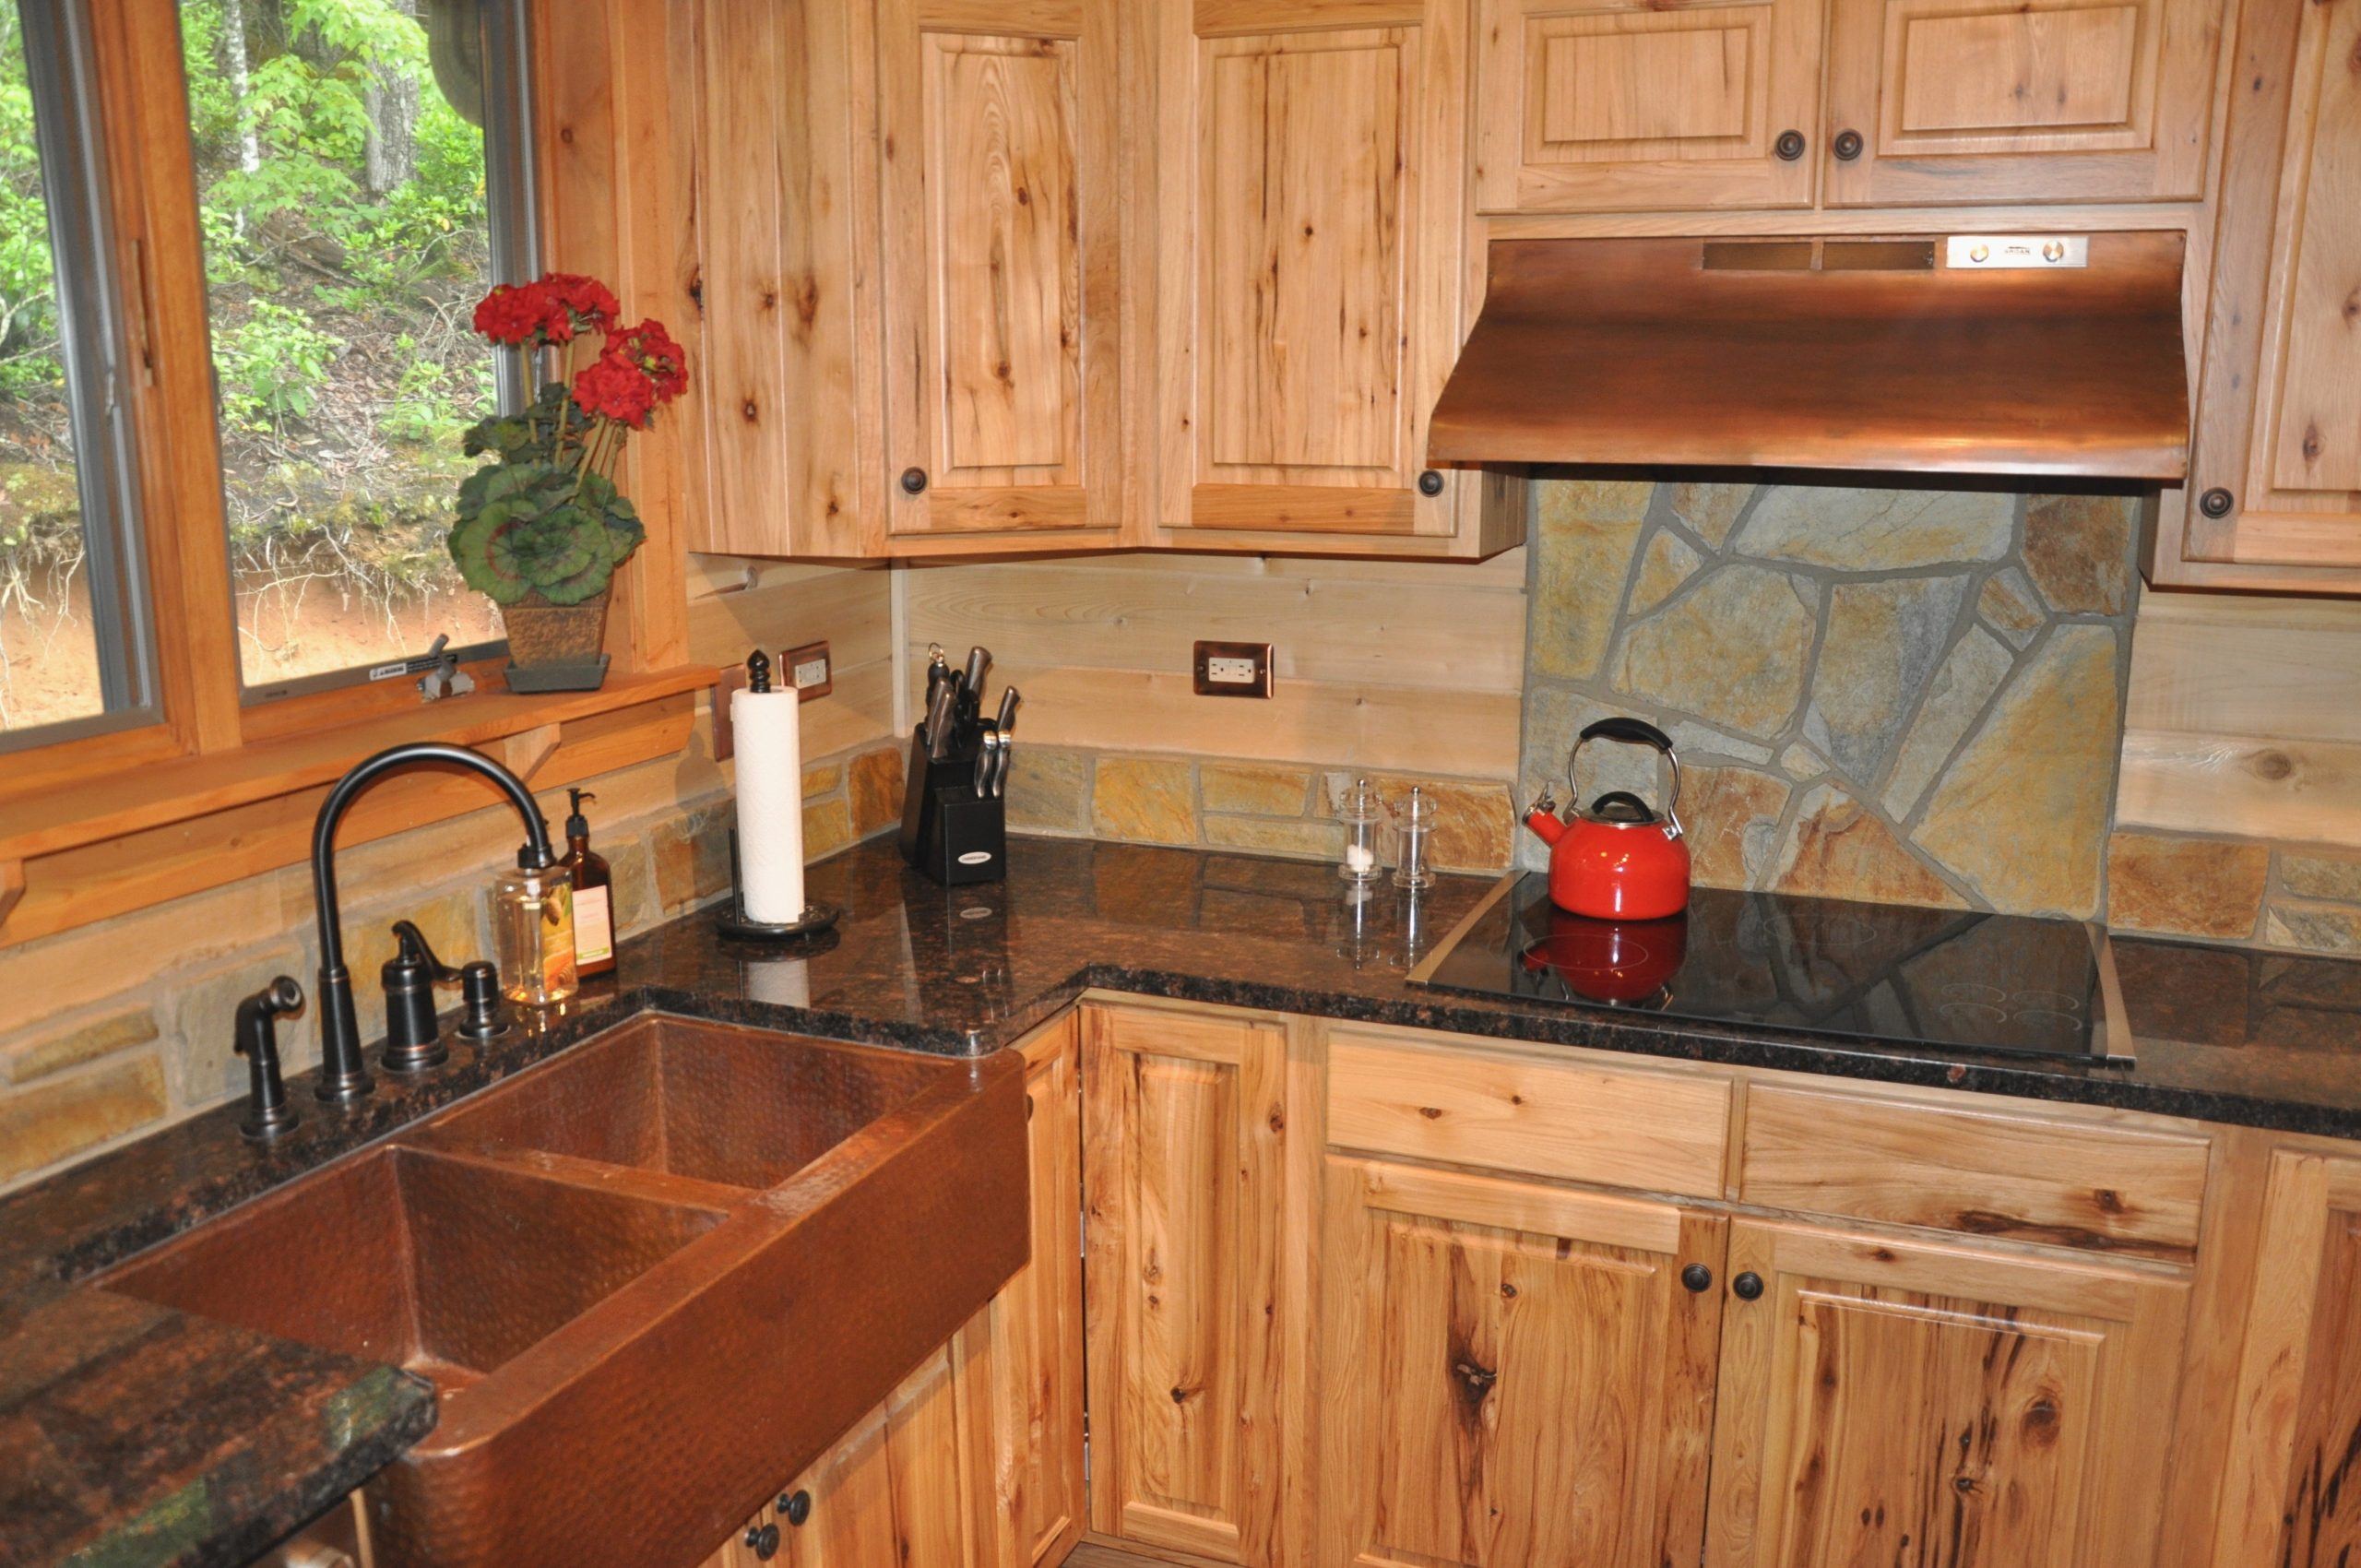 Reclaimed Wood Kitchen Cabinets For Your Dream House ...